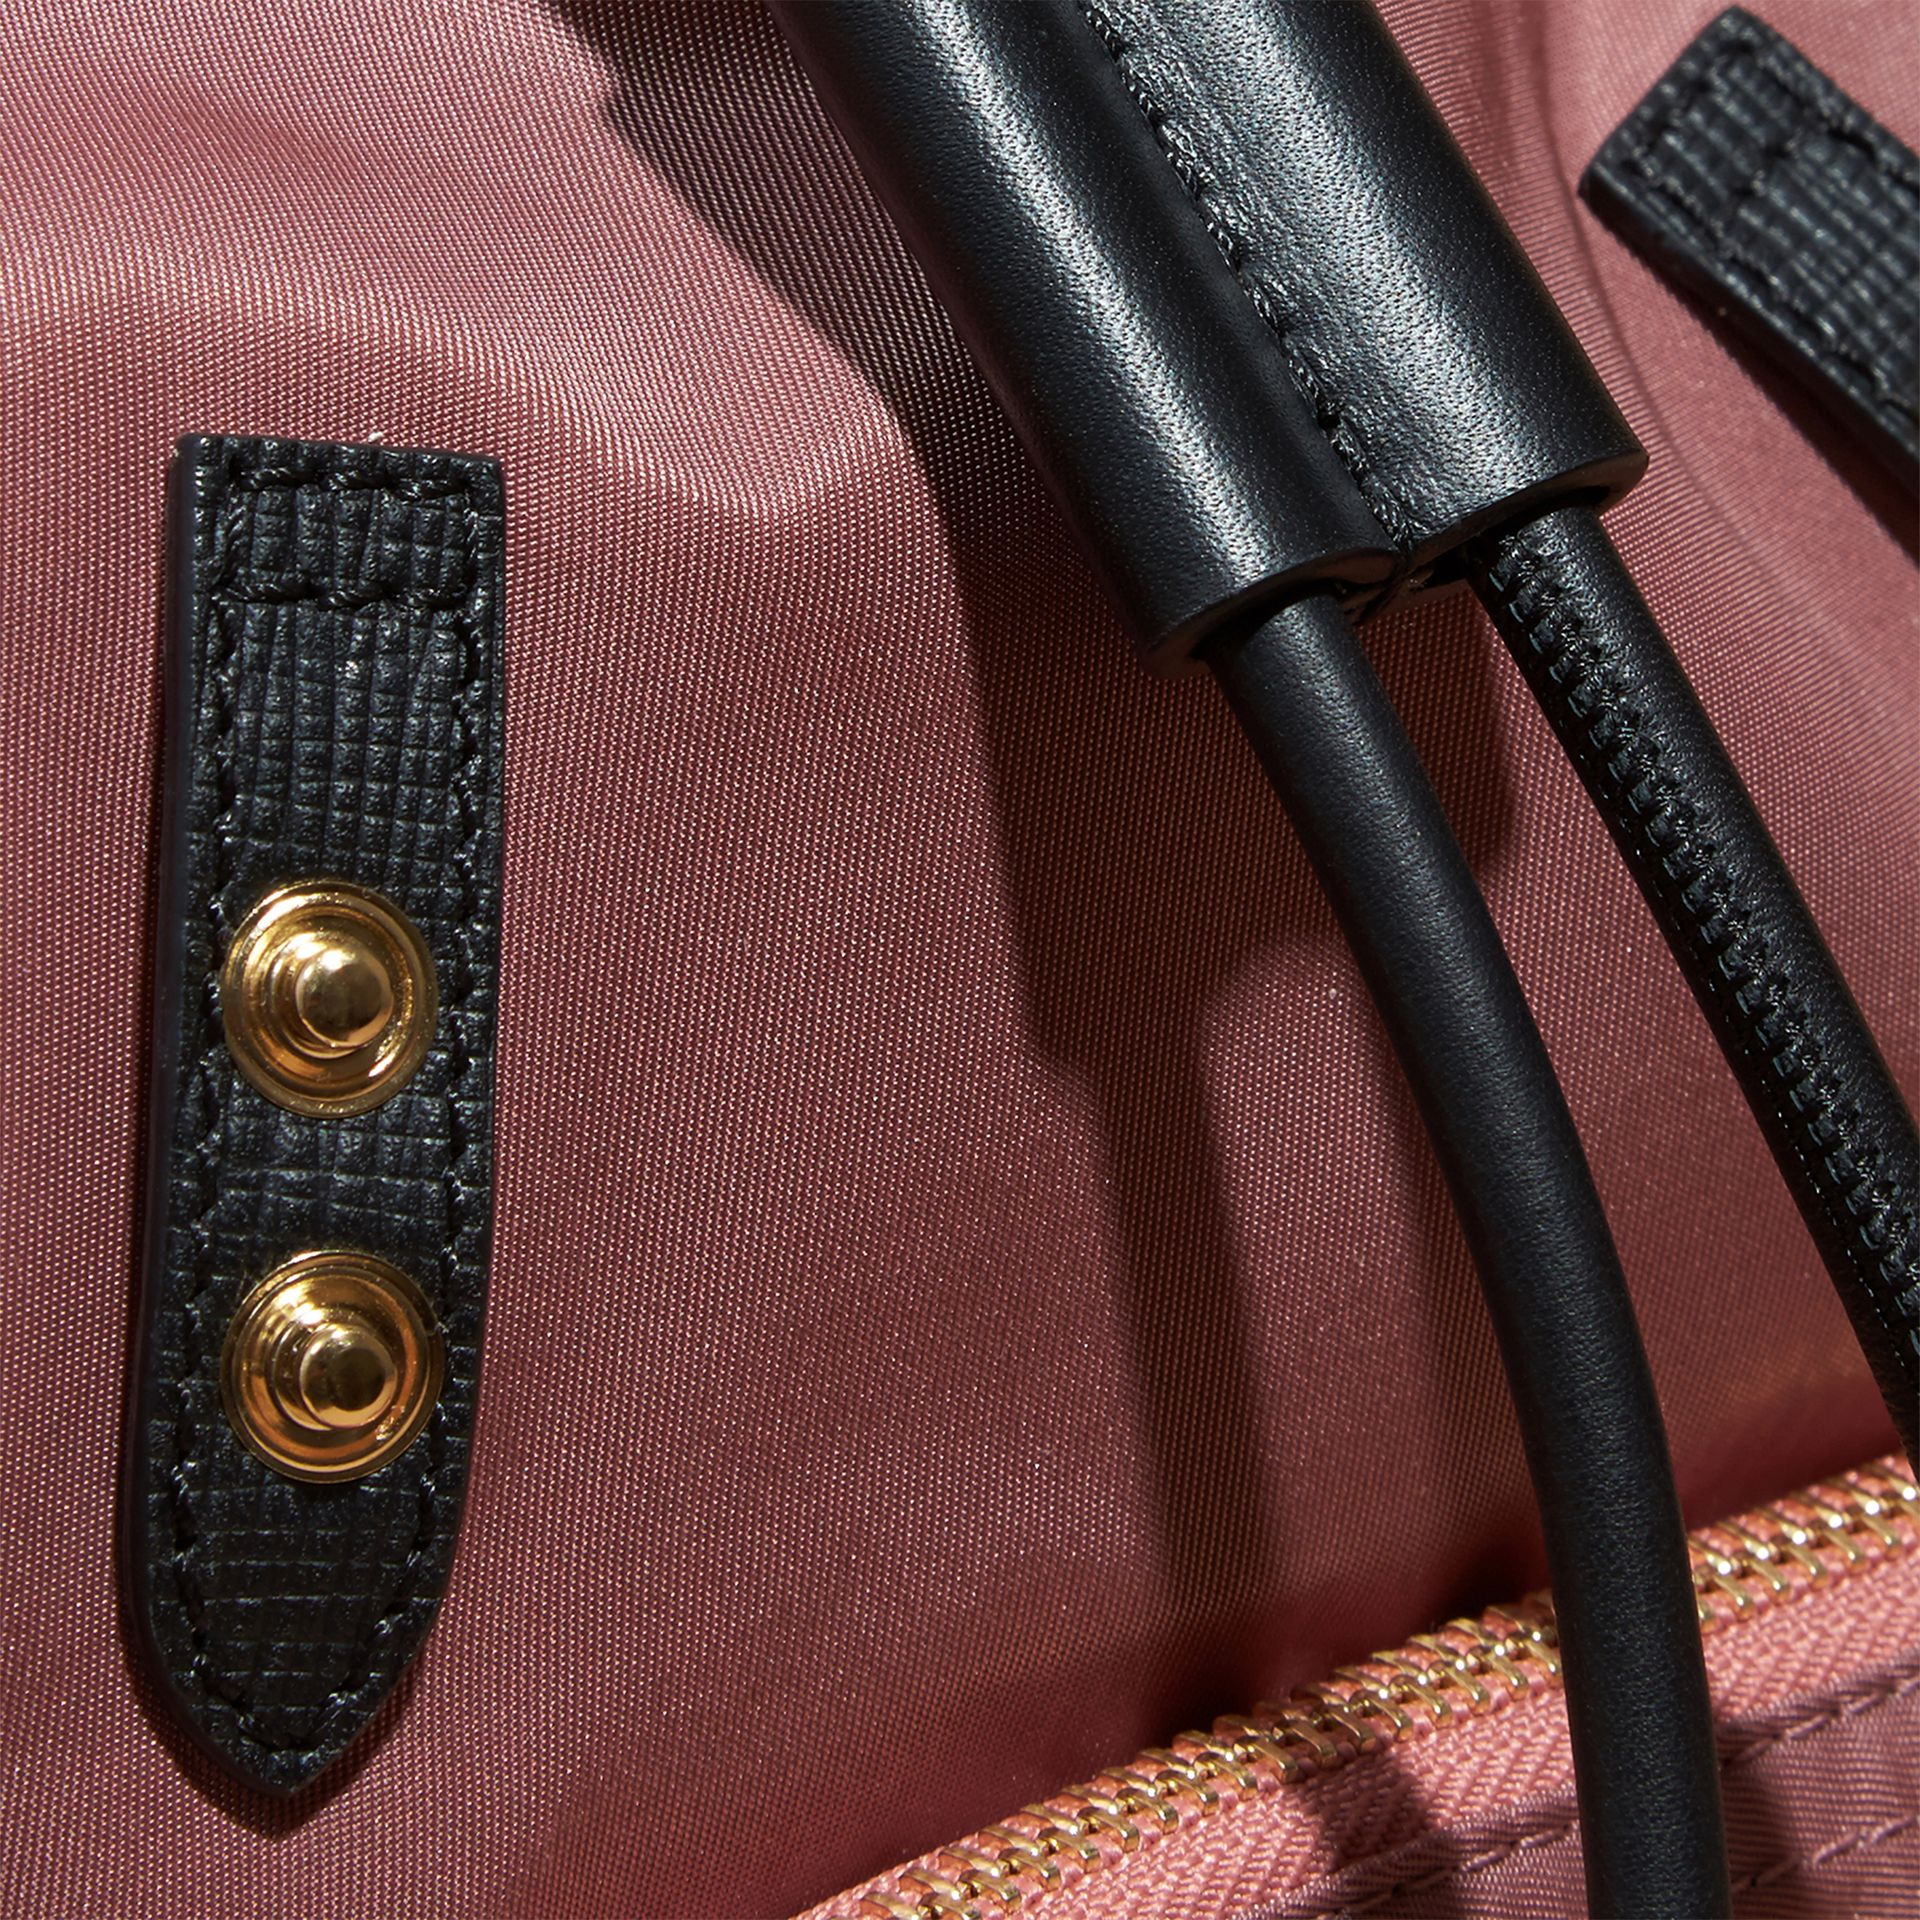 Rose mauve Petit sac The Rucksack en nylon technique et cuir Rose Mauve - photo de la galerie 2